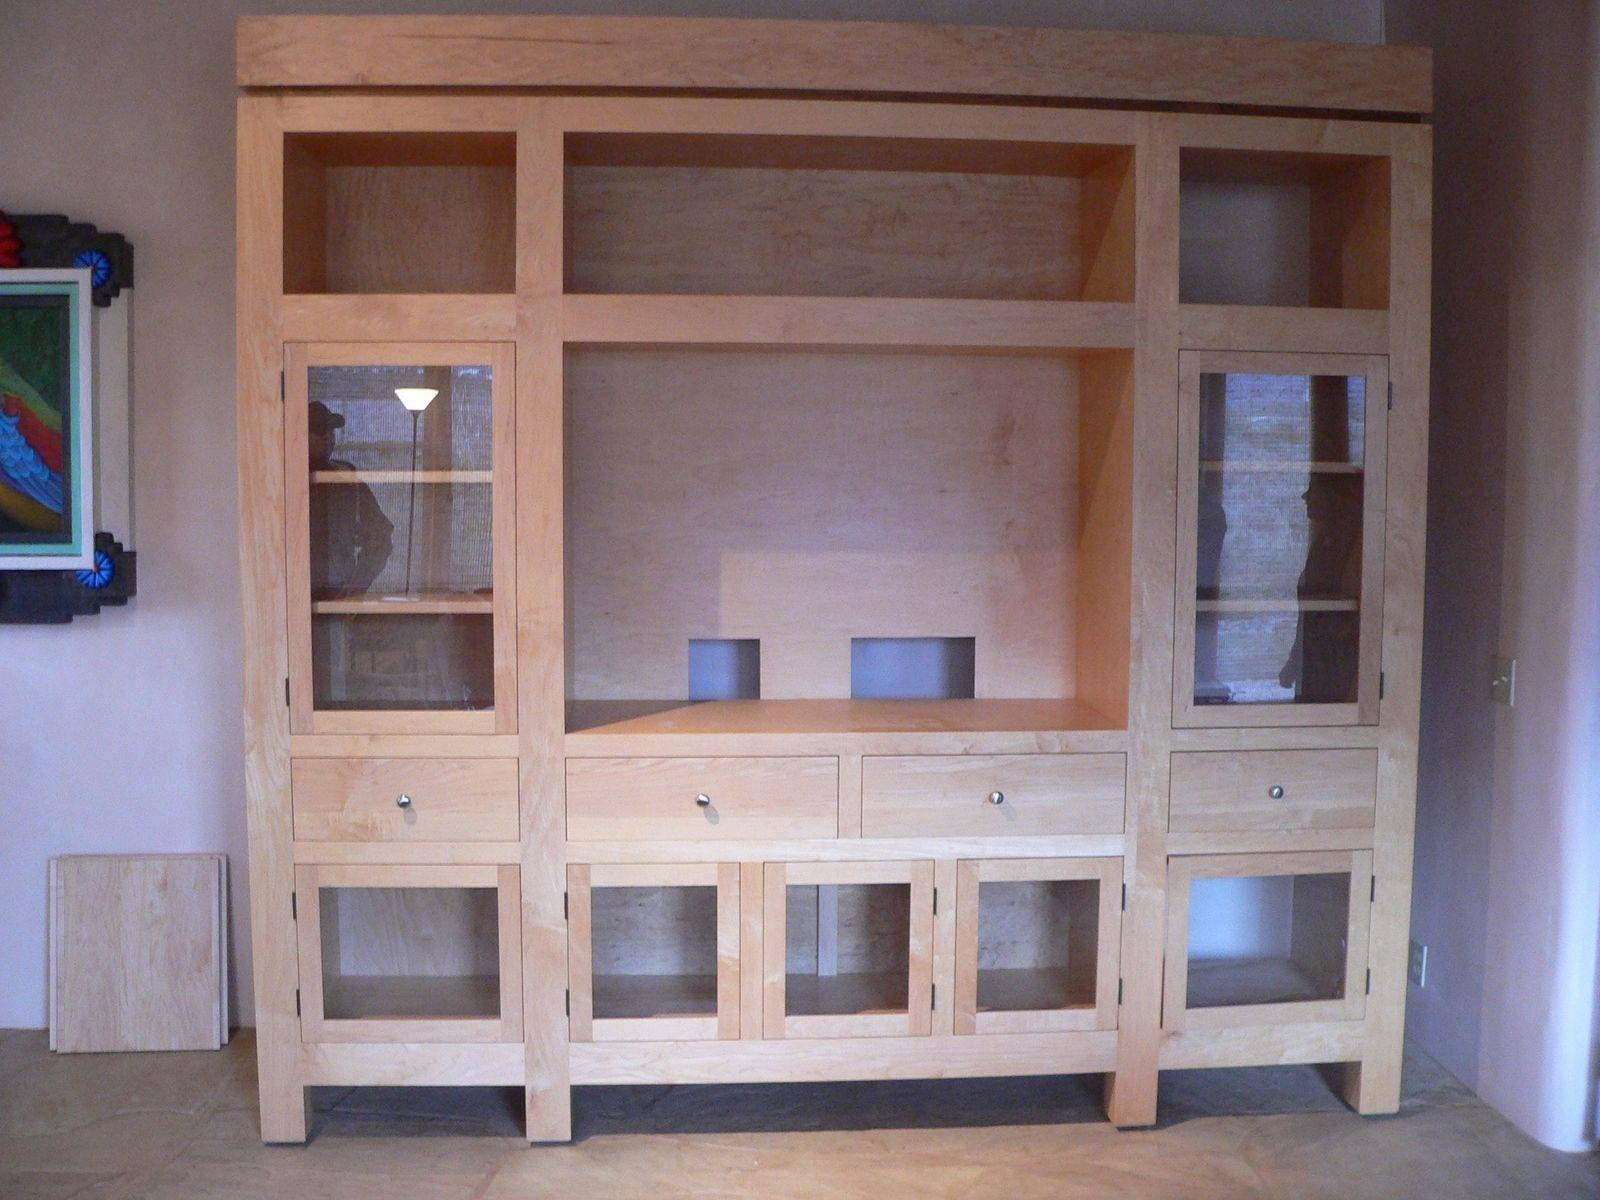 Custom Diy Unfinished Oak Tv Stand Cabinet With Glass Door Drawer Throughout Wooden Tv Stands With Glass Doors (View 15 of 15)